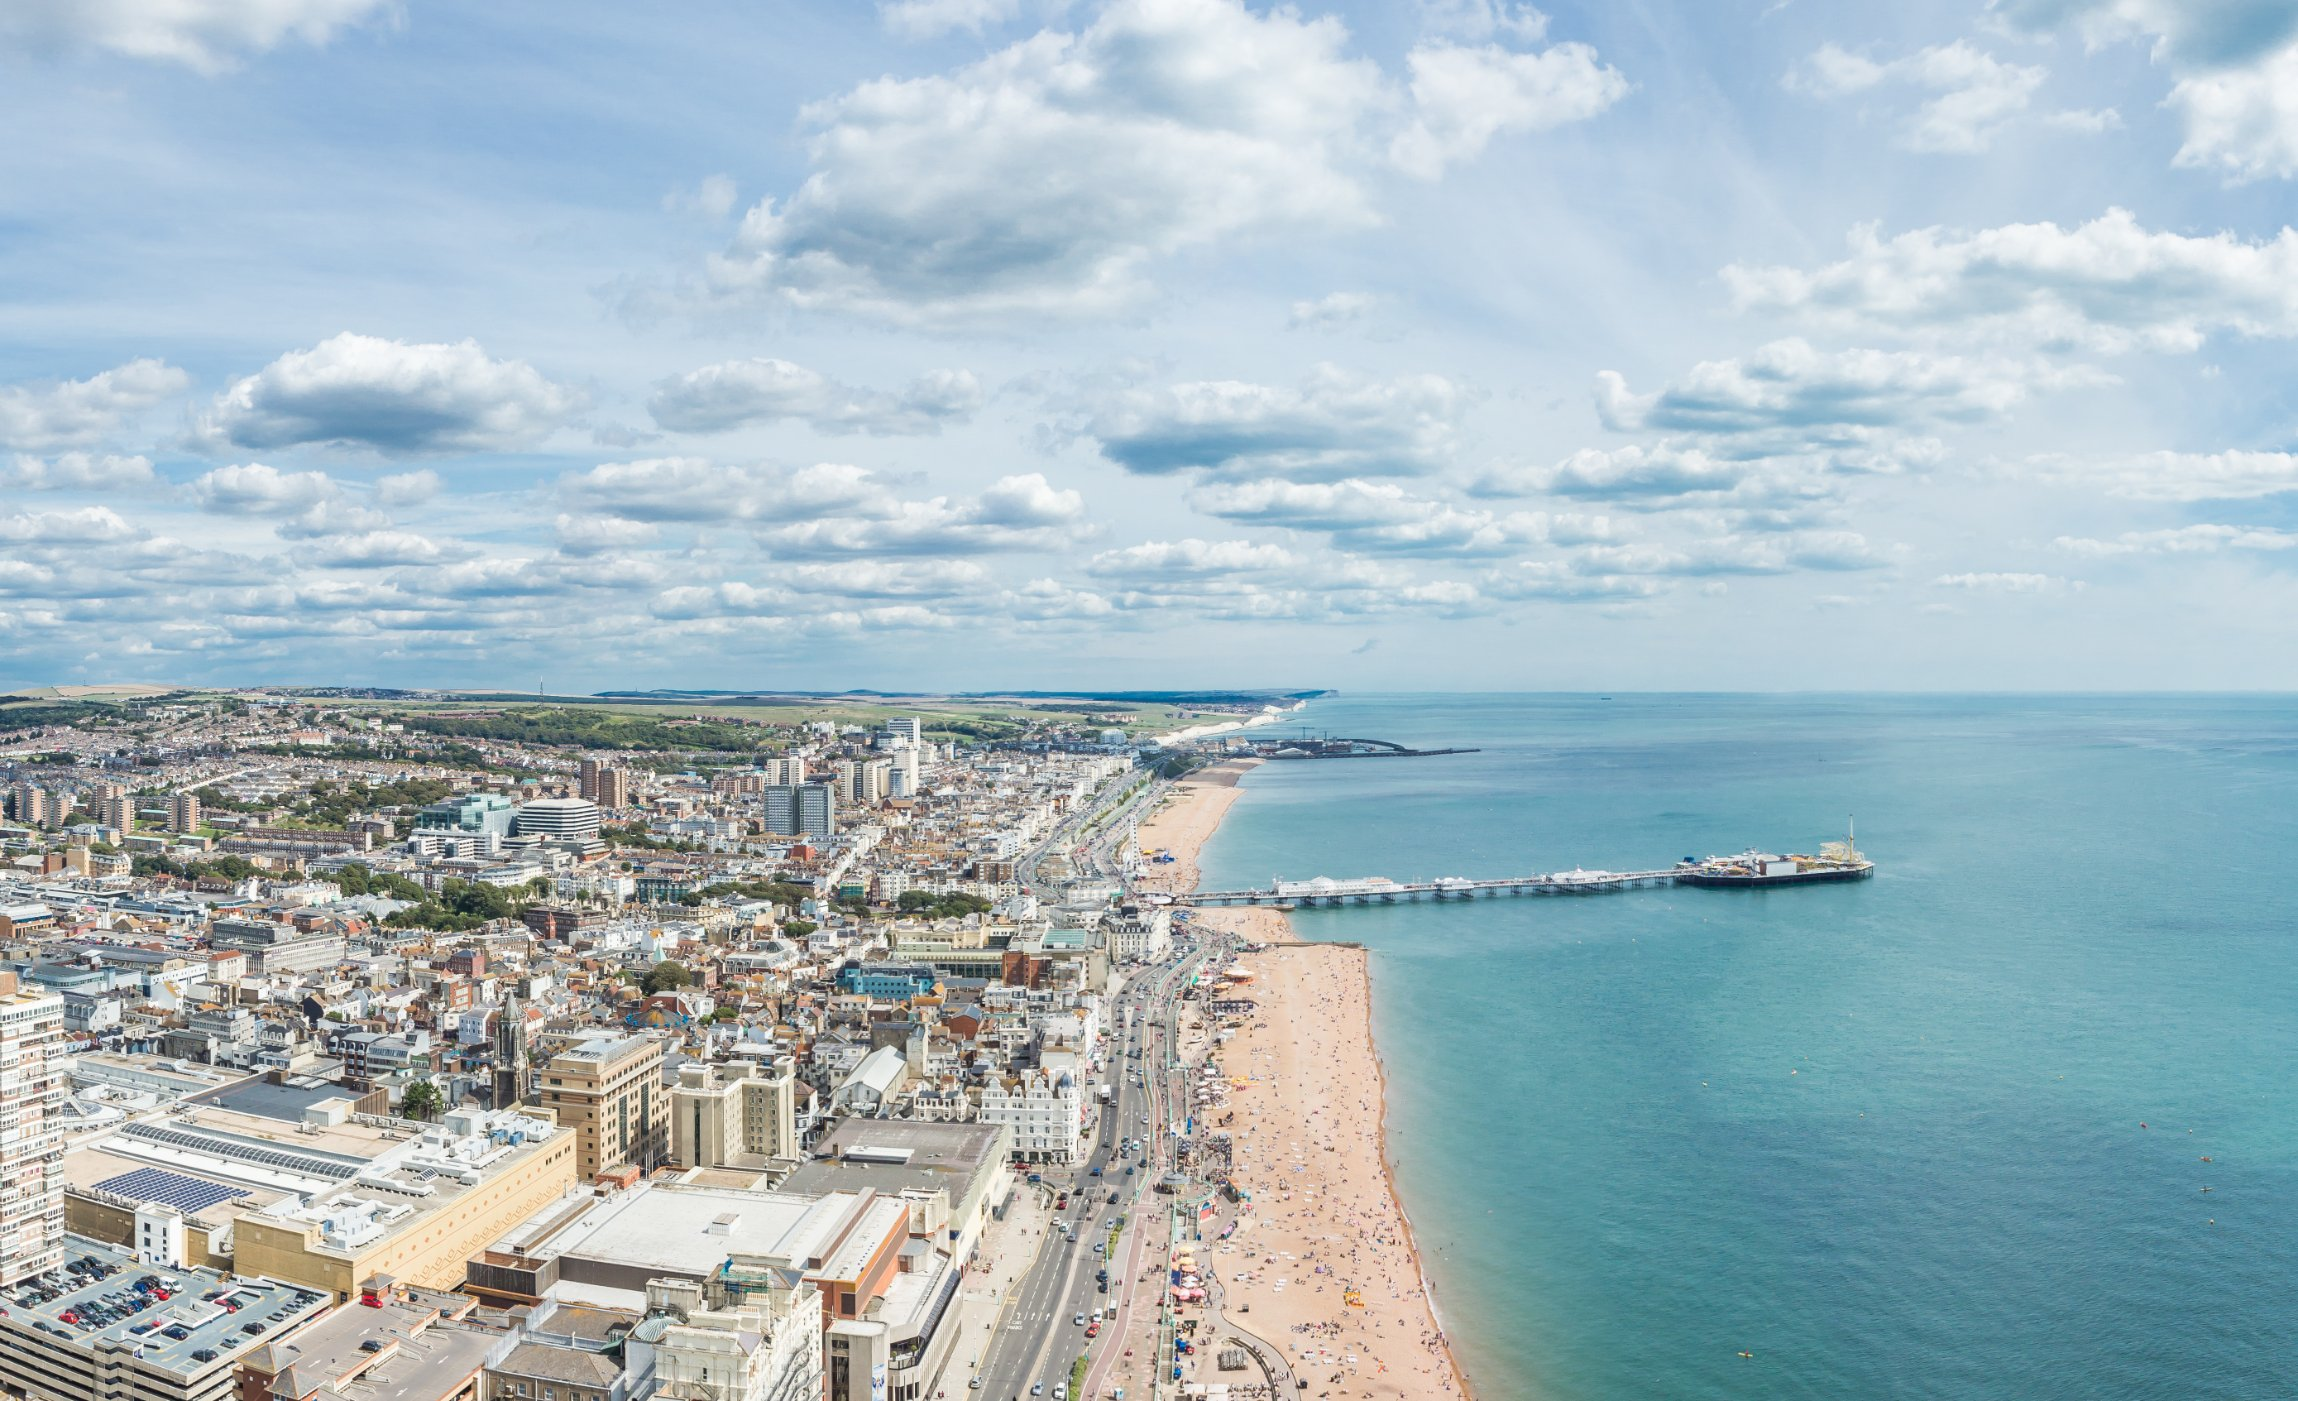 Brighton i360 becomes tallest observation tower - CNN Style